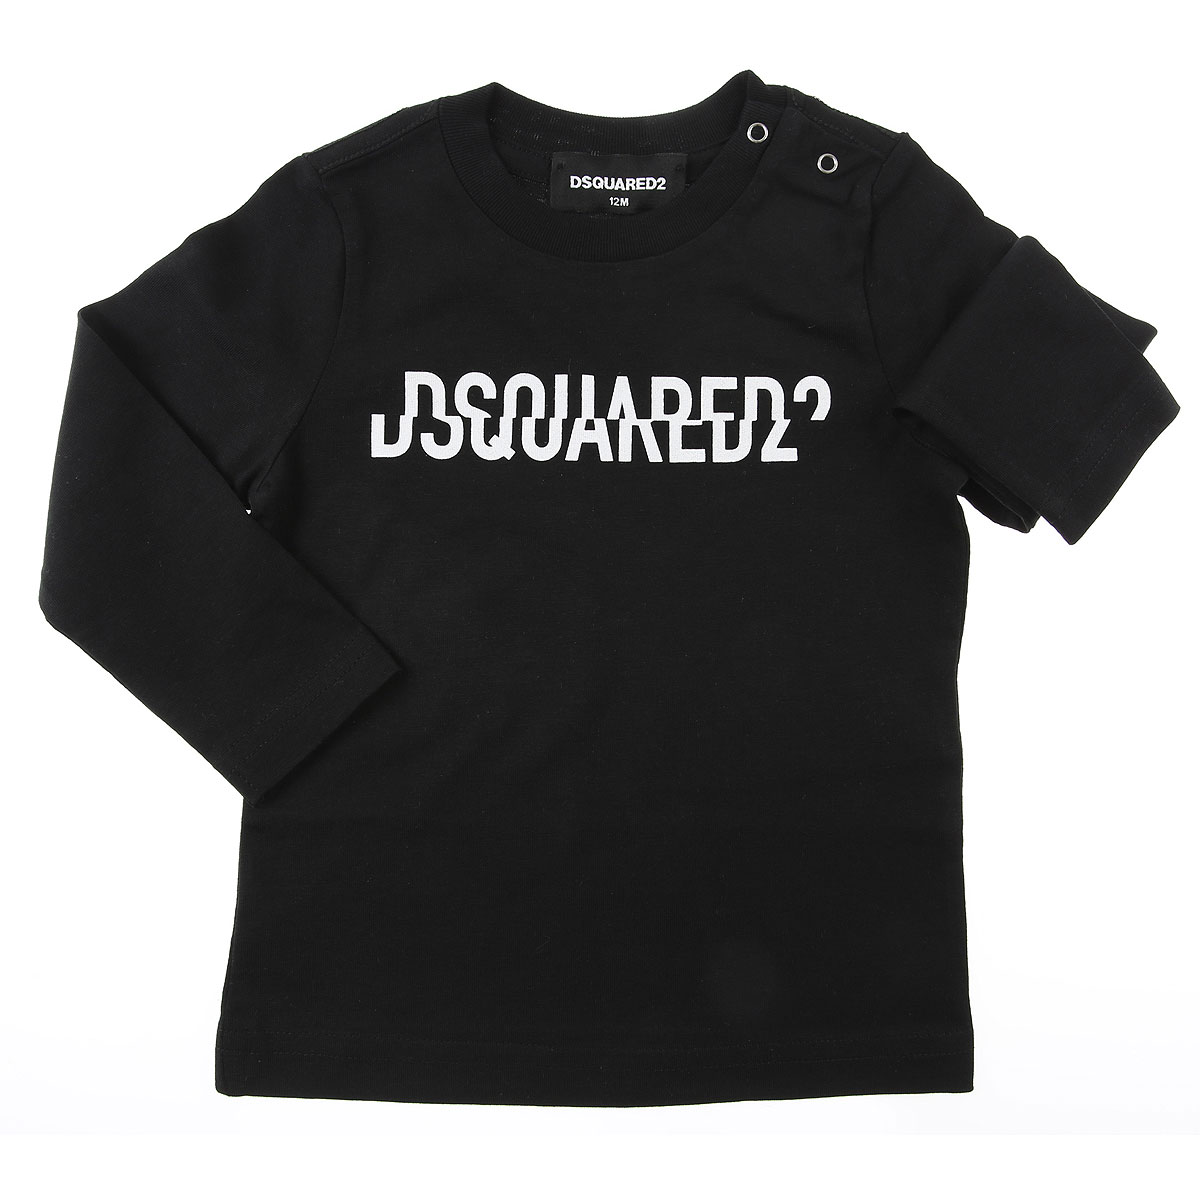 Dsquared2 Baby T-Shirt for Boys On Sale, Blac, Cotton, 2019, 12 M 3Y 6M